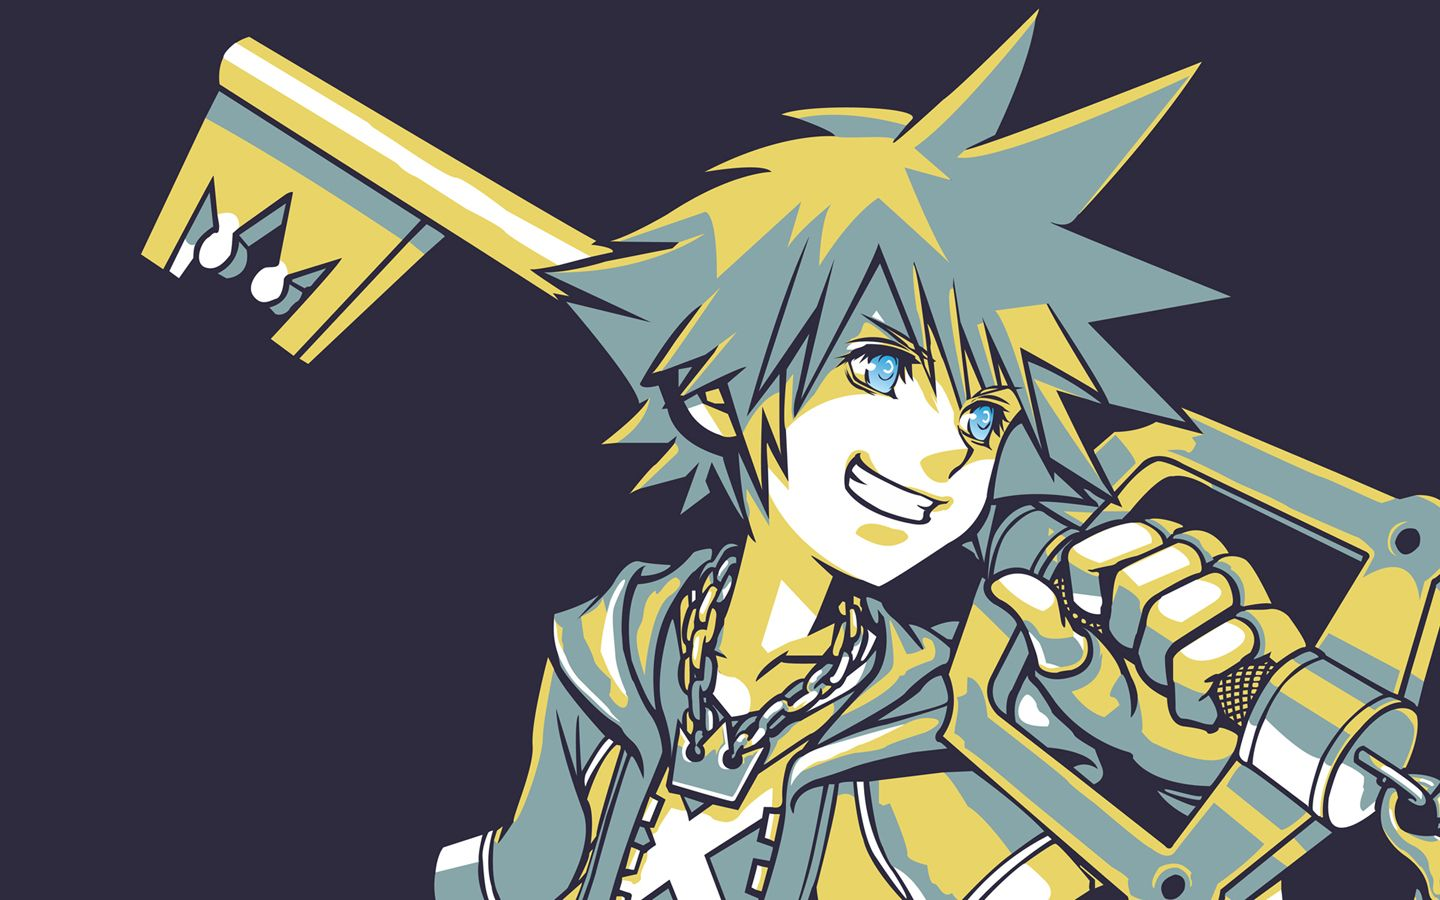 Kingdom Hearts Wallpapers High Quality For Desktop Wallpaper